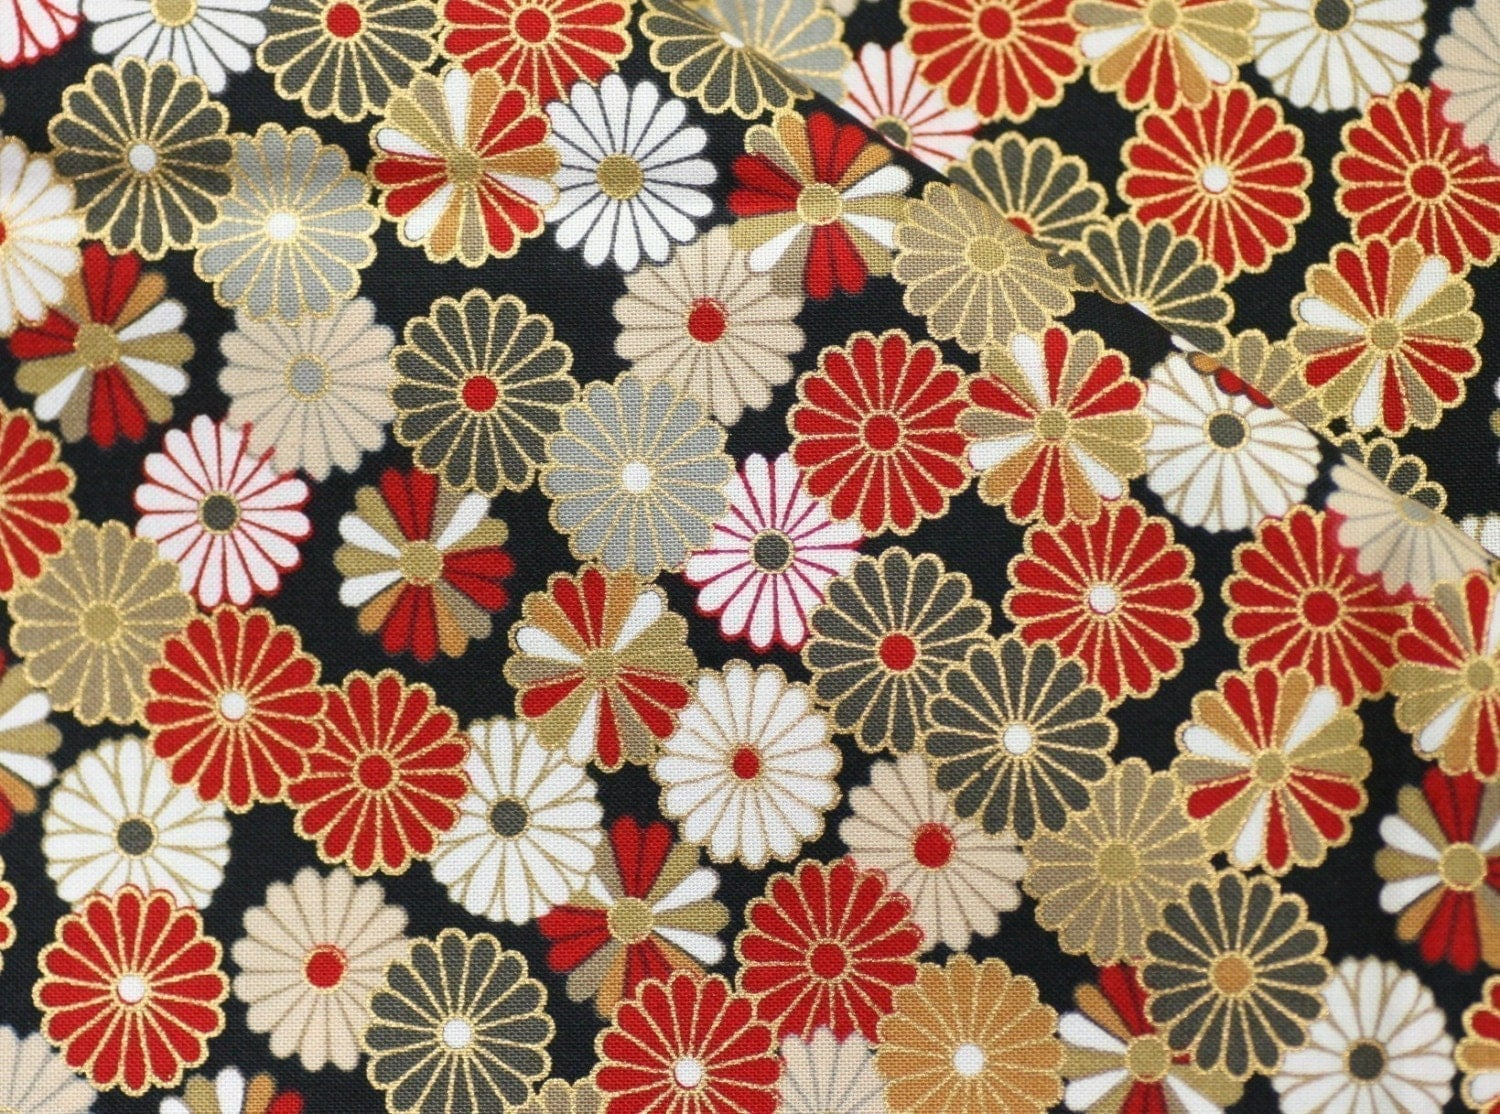 Japanese textiles patterns the image for Patterned material fabric